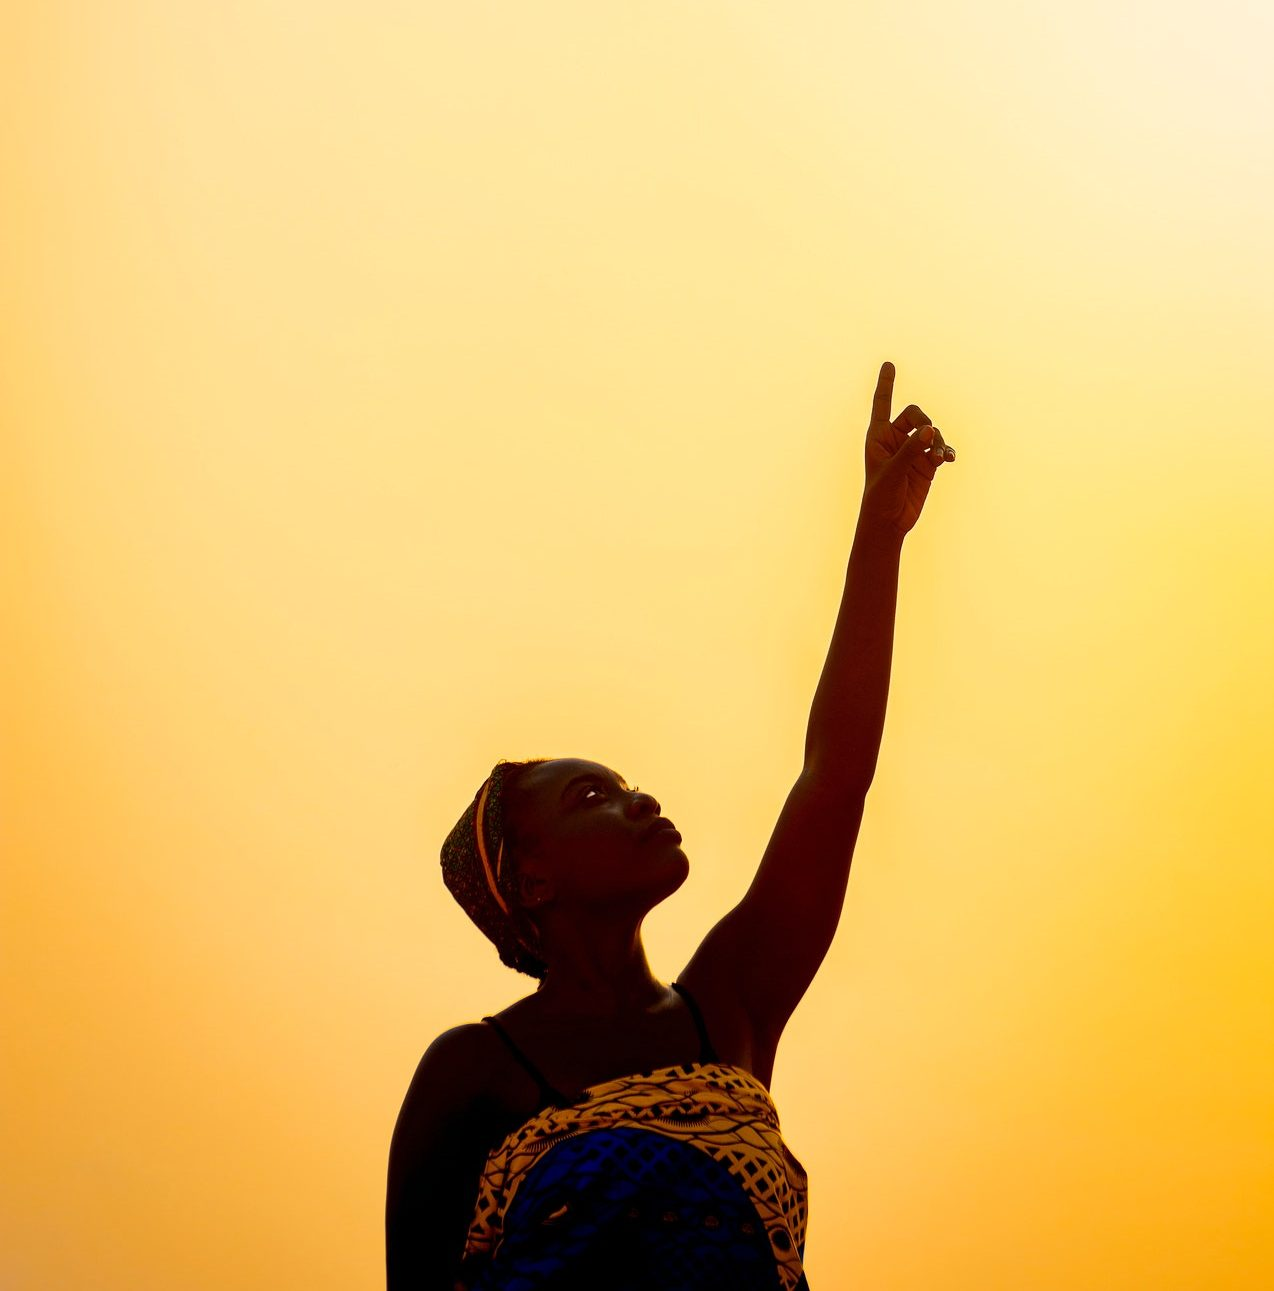 Woman standing against a warm yellow backdrop holding her hand in the air like the IWD #ChooseToChallenge pose